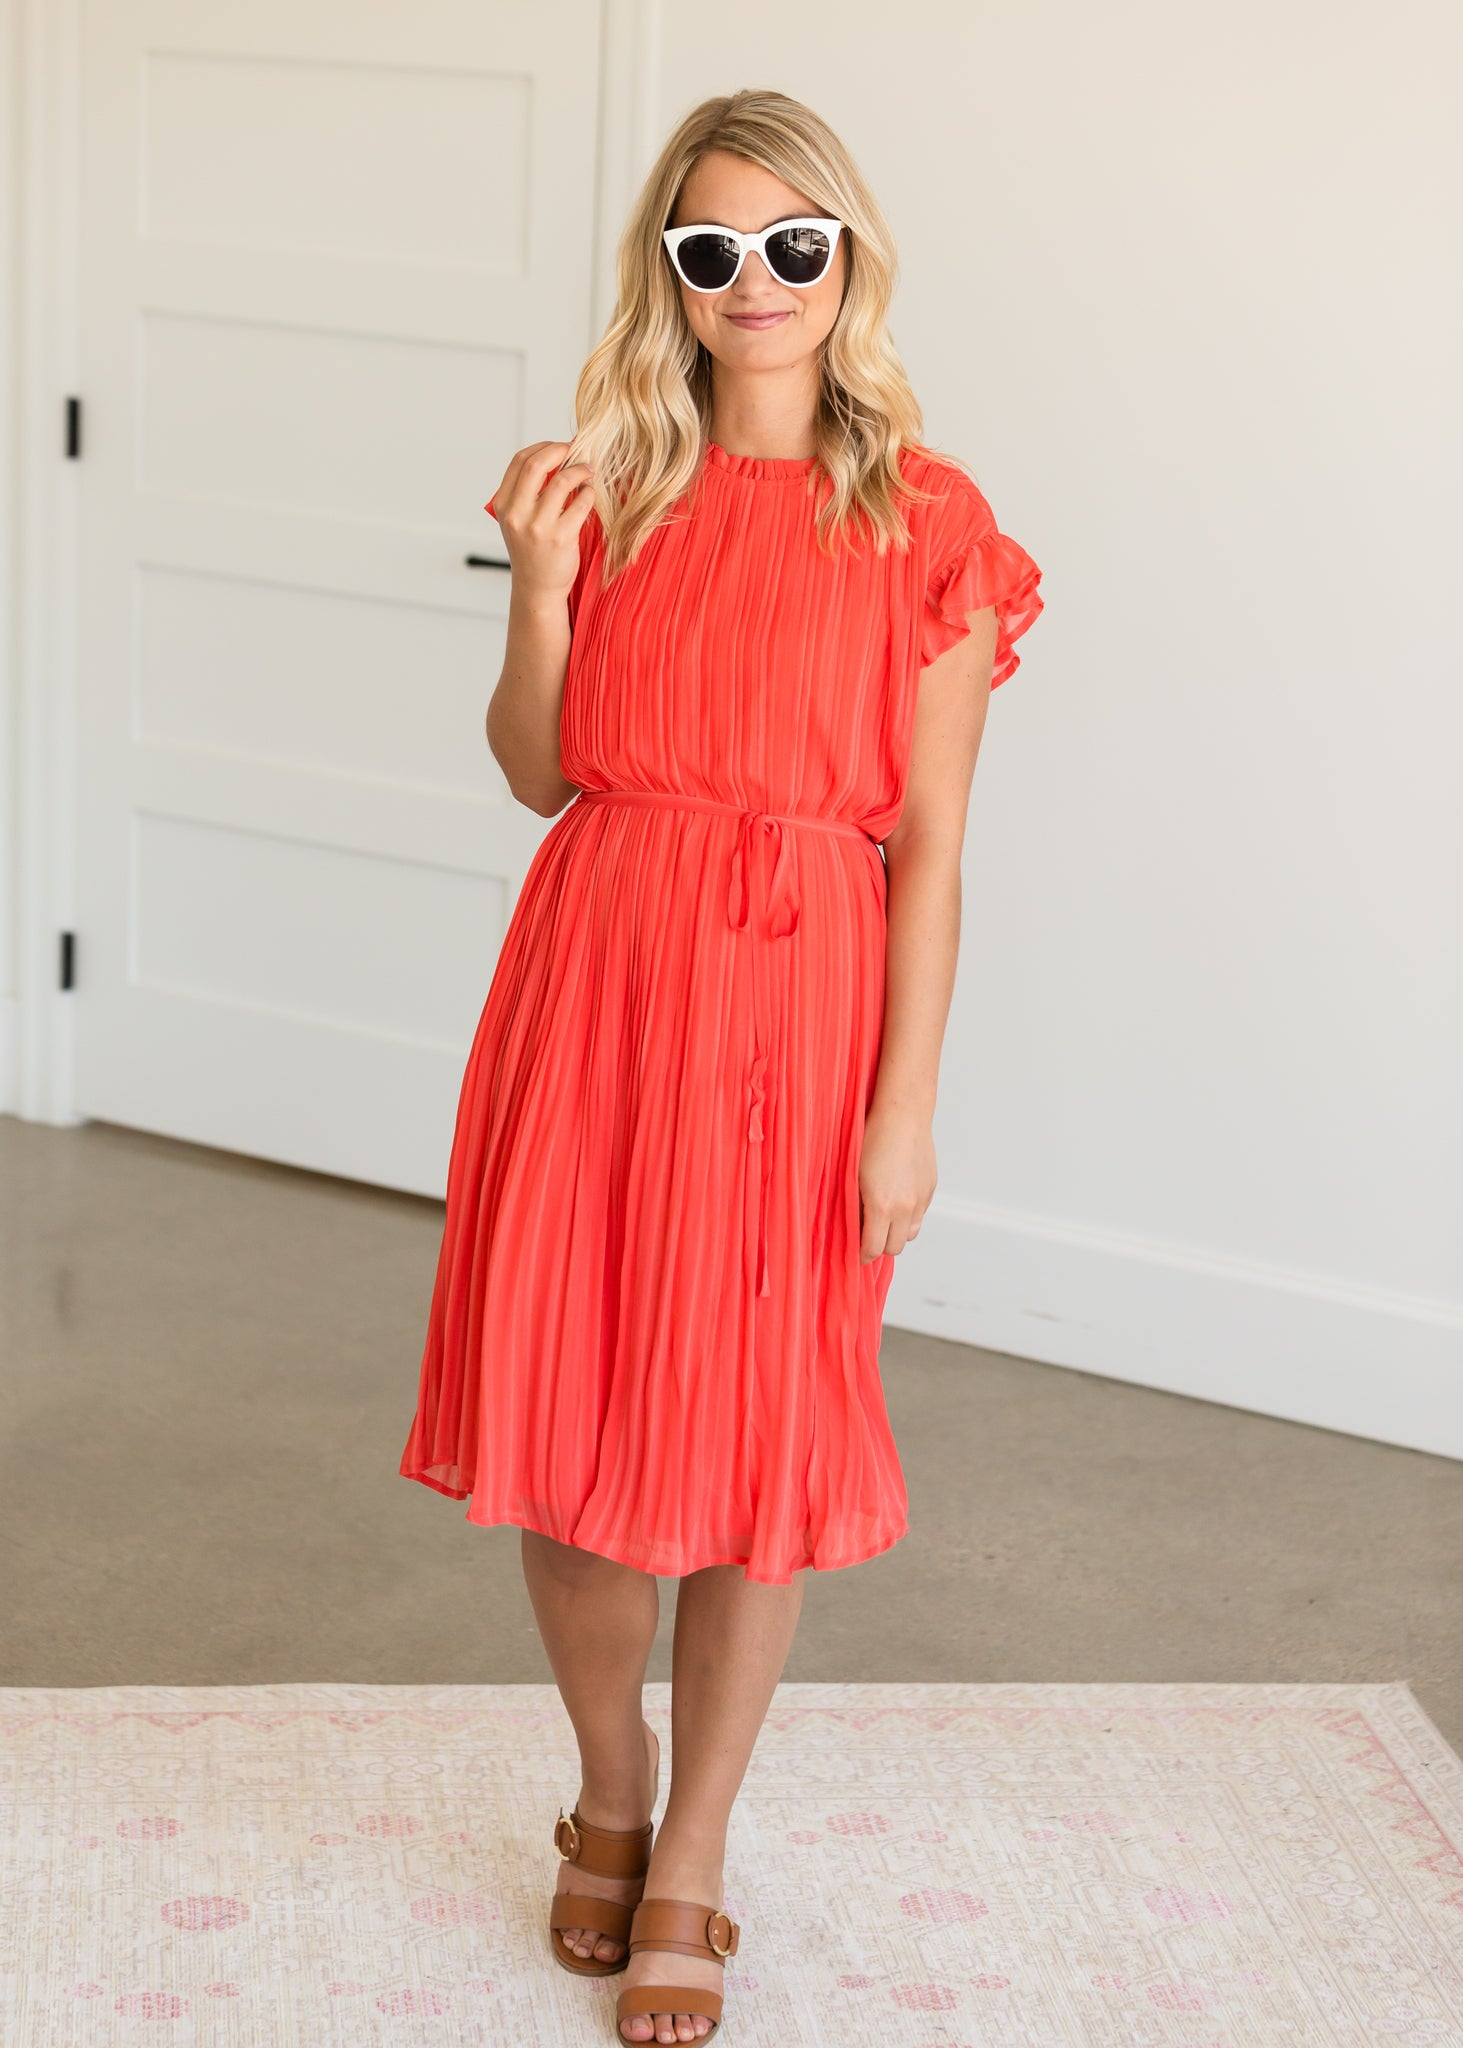 High Neck Pleated Belted Coral Midi Dress - FINAL SALE